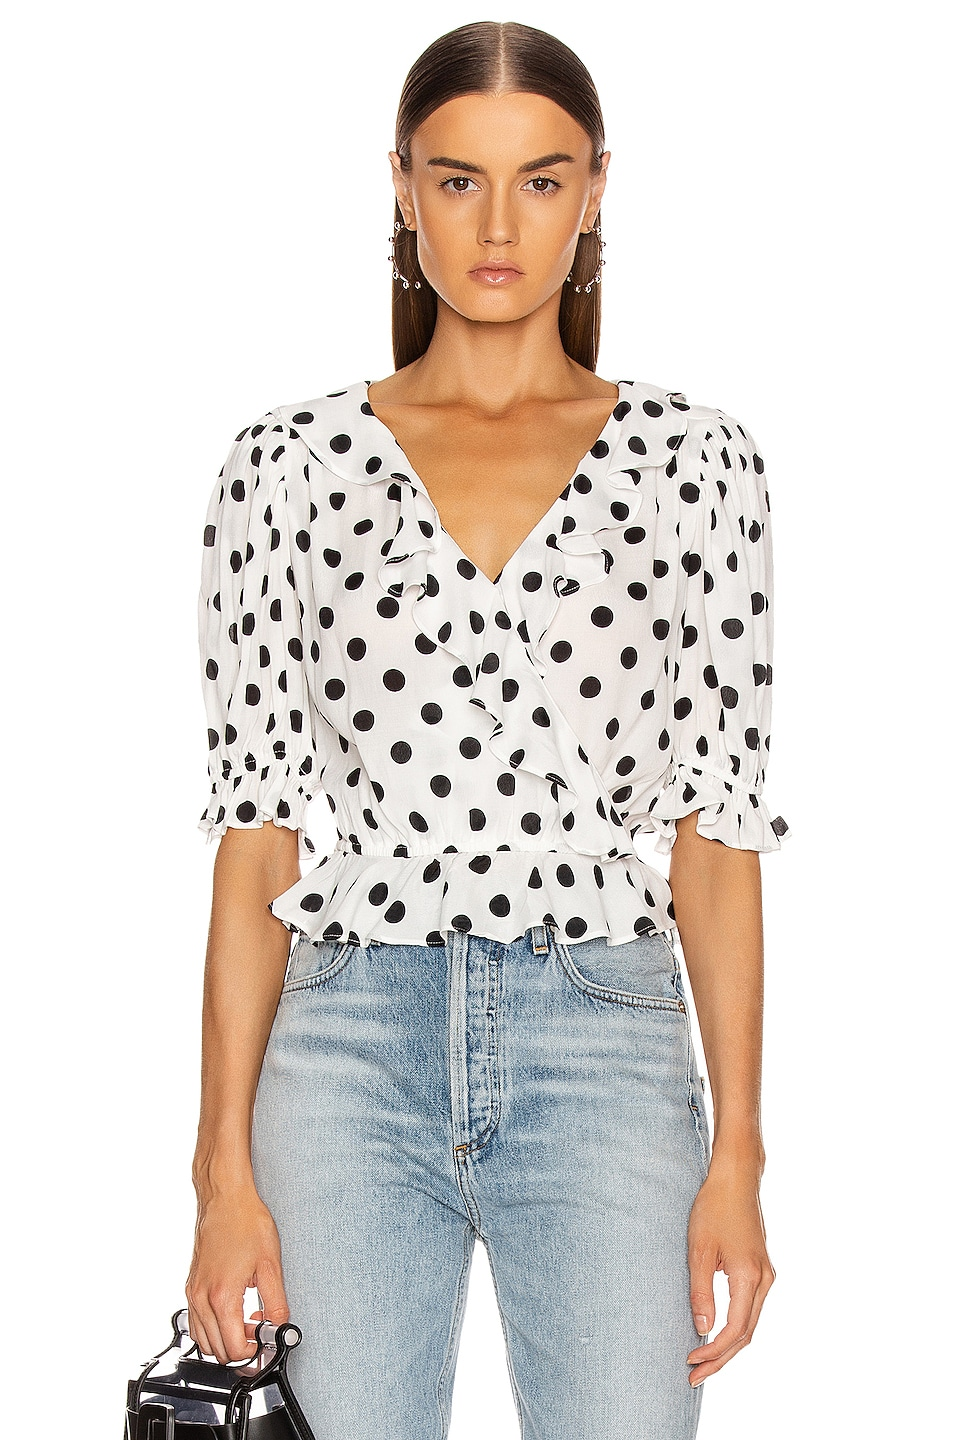 Image 1 of ICONS Objects of Devotion Cha Cha Blouse in White & Black Polka Dot